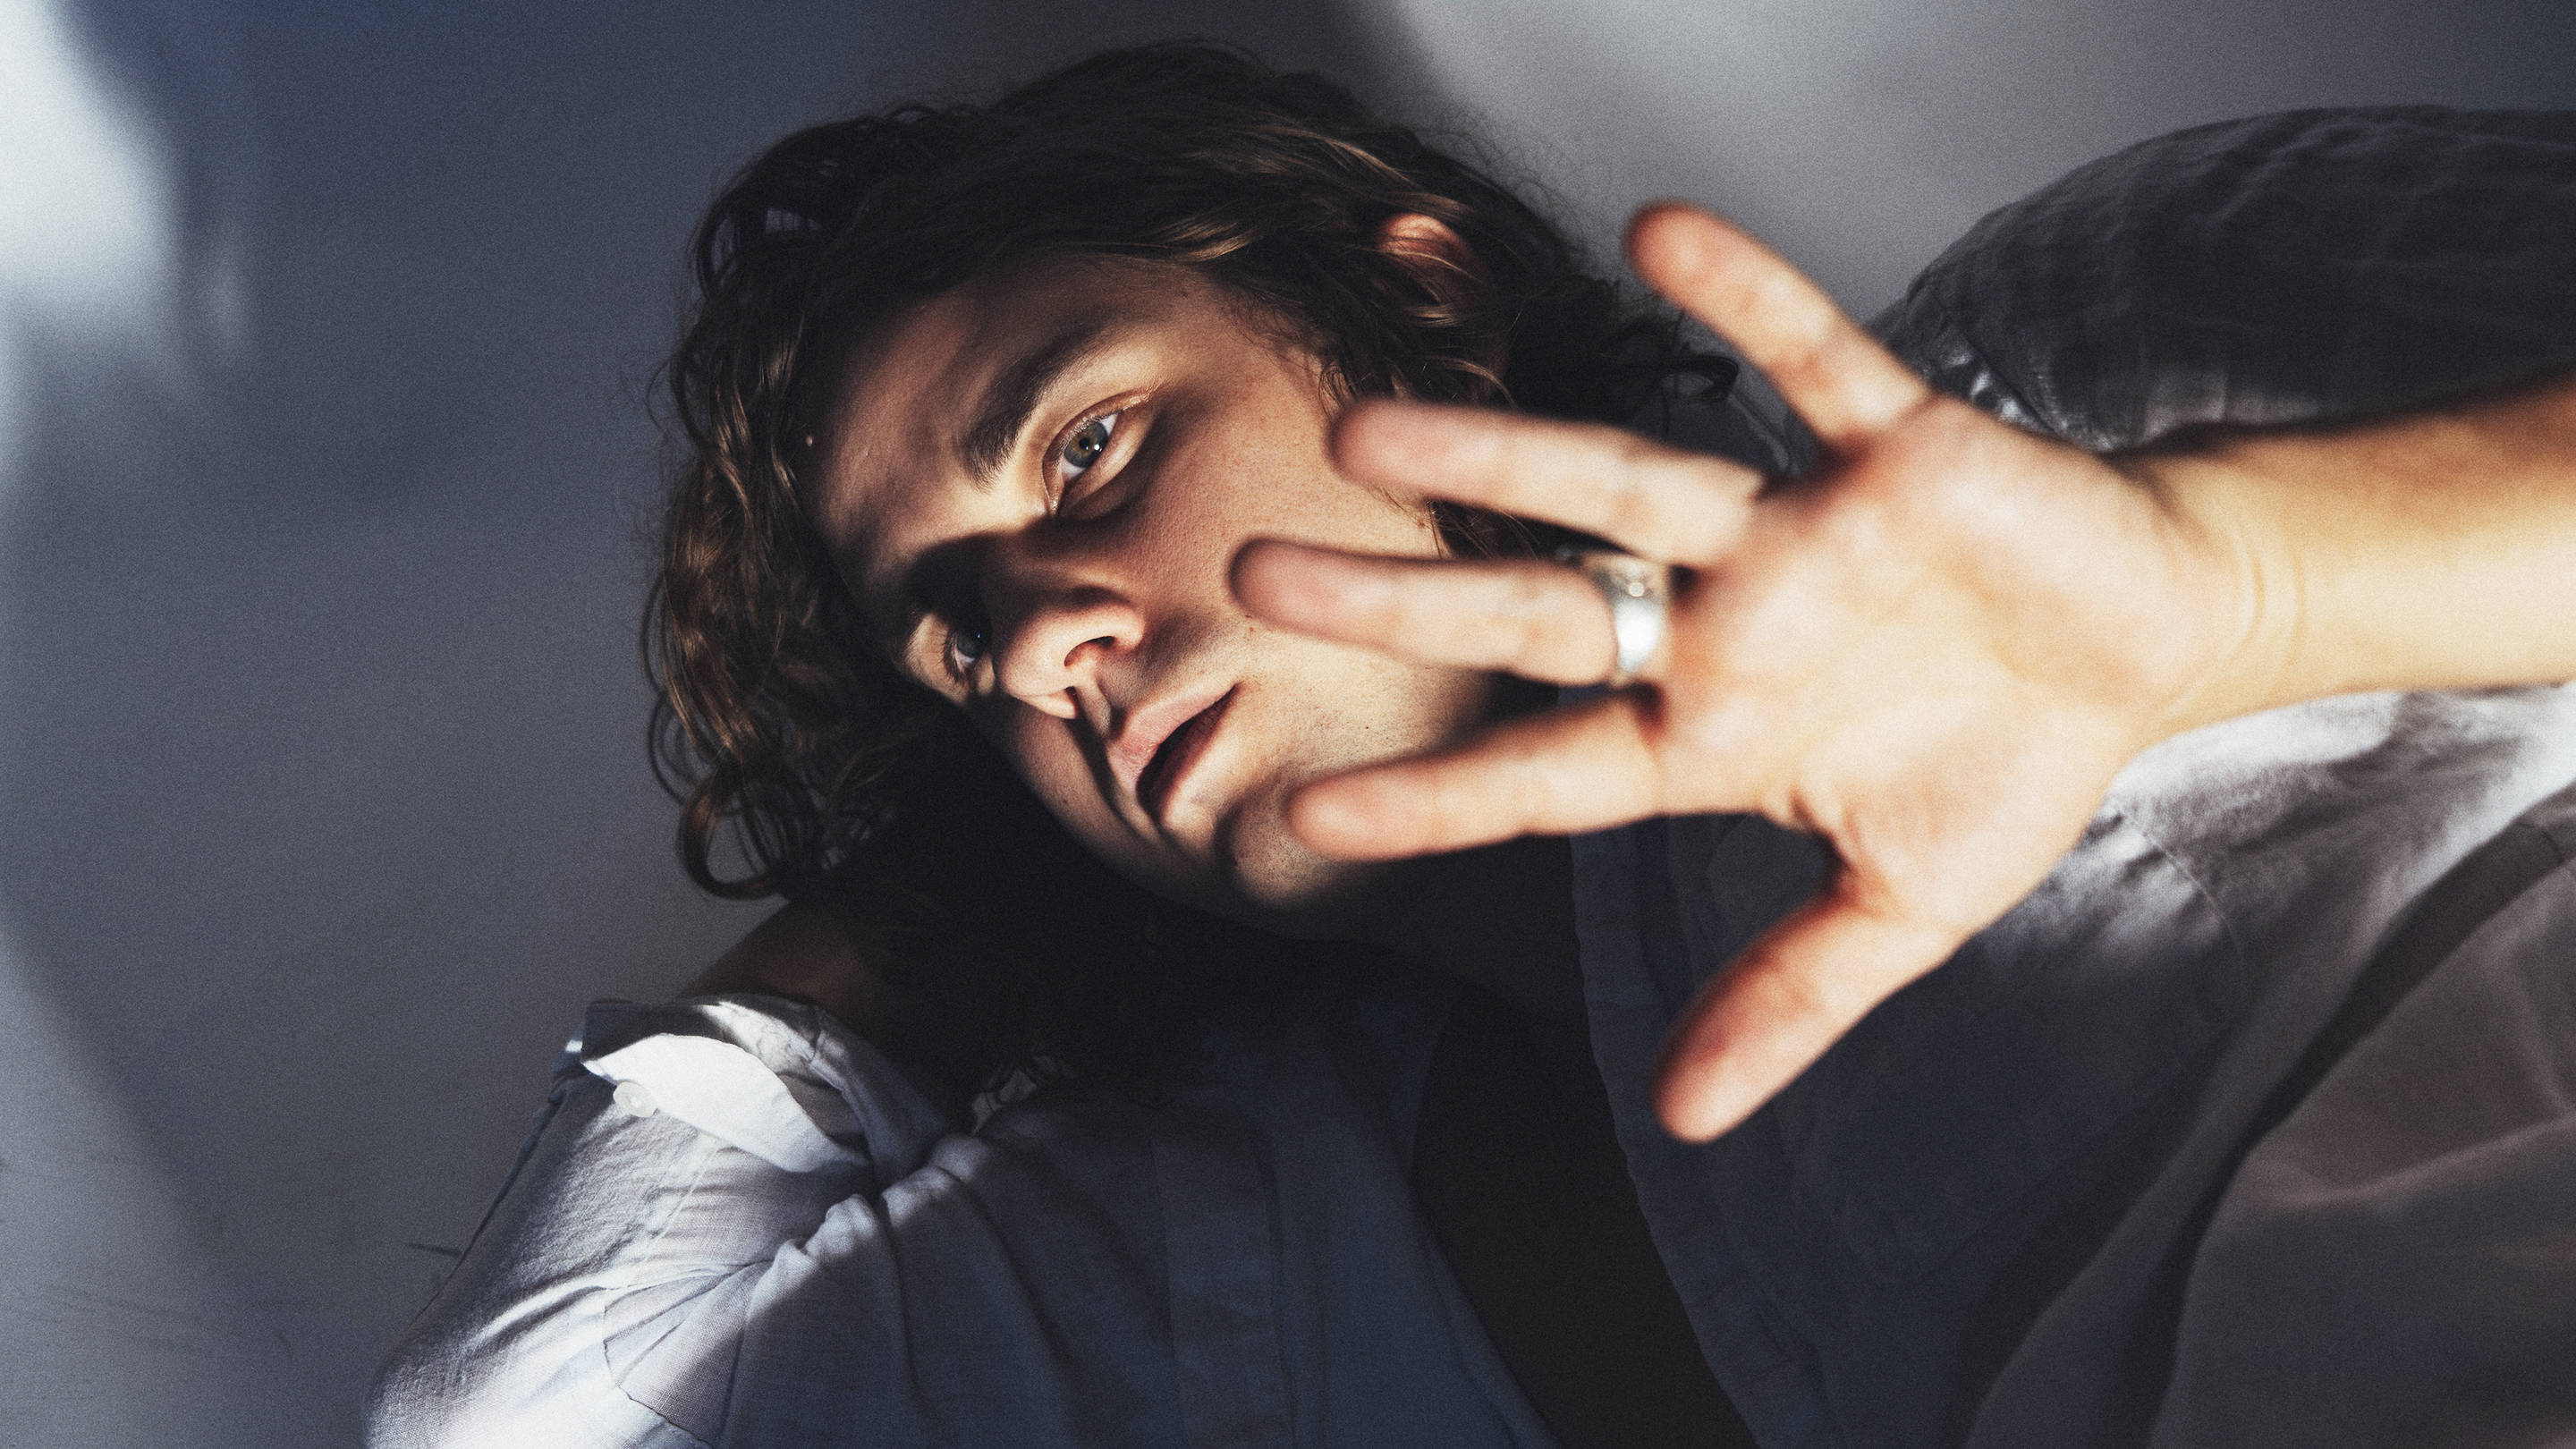 Kevin morby playboy